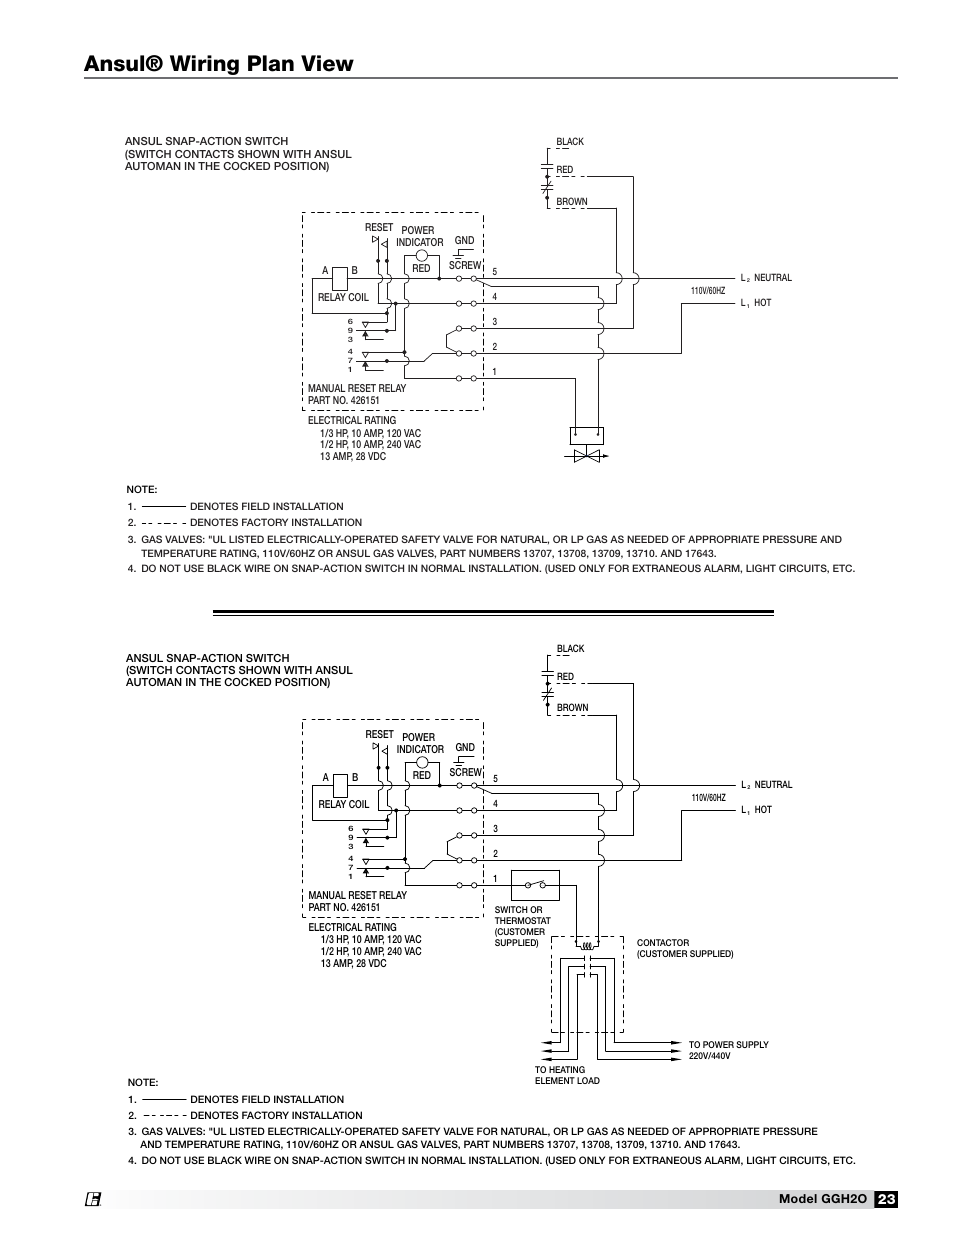 Ansul Wiring Diagram Fans Electrical Diagrams Images Gallery